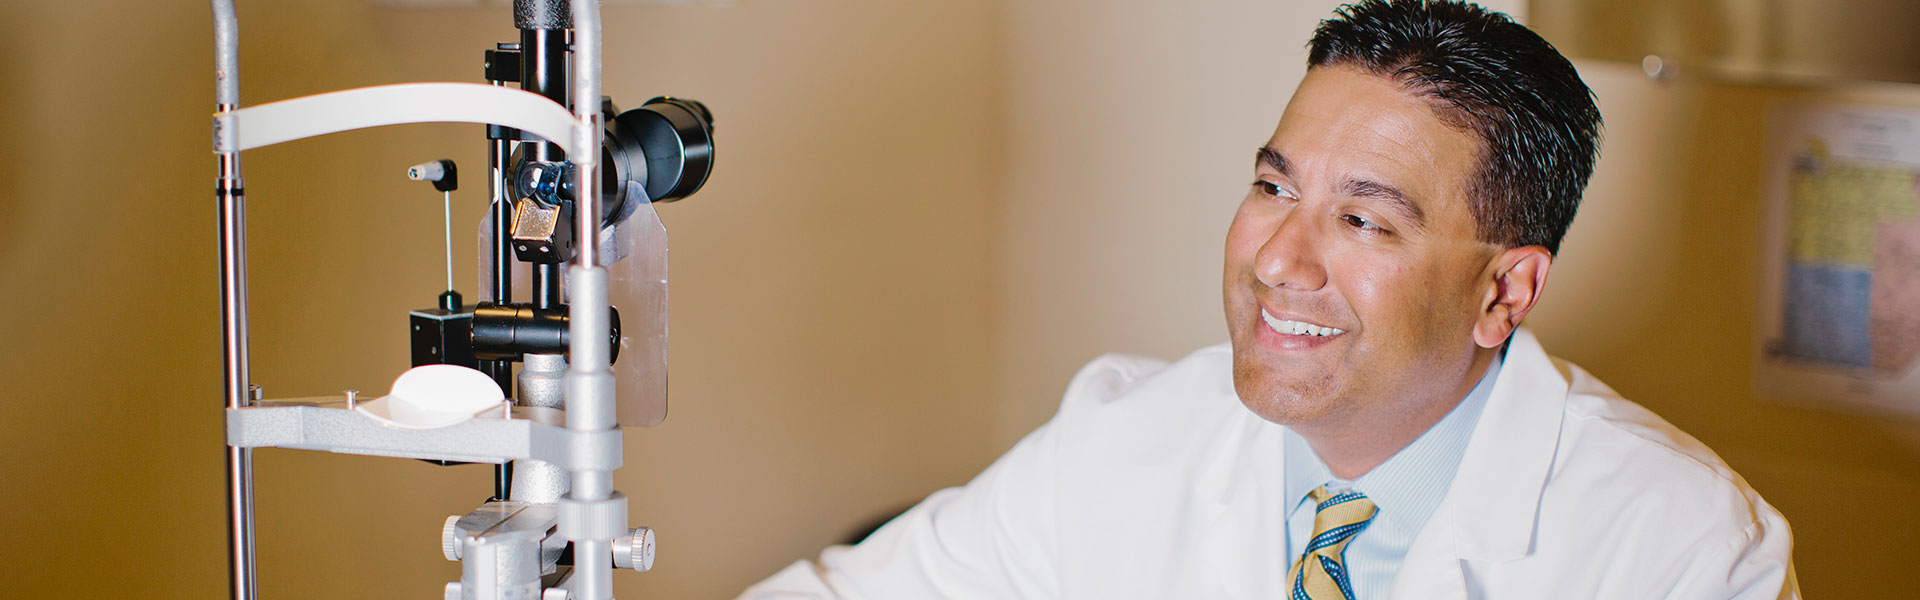 Dr. Niraj Patel and his eye care ervices